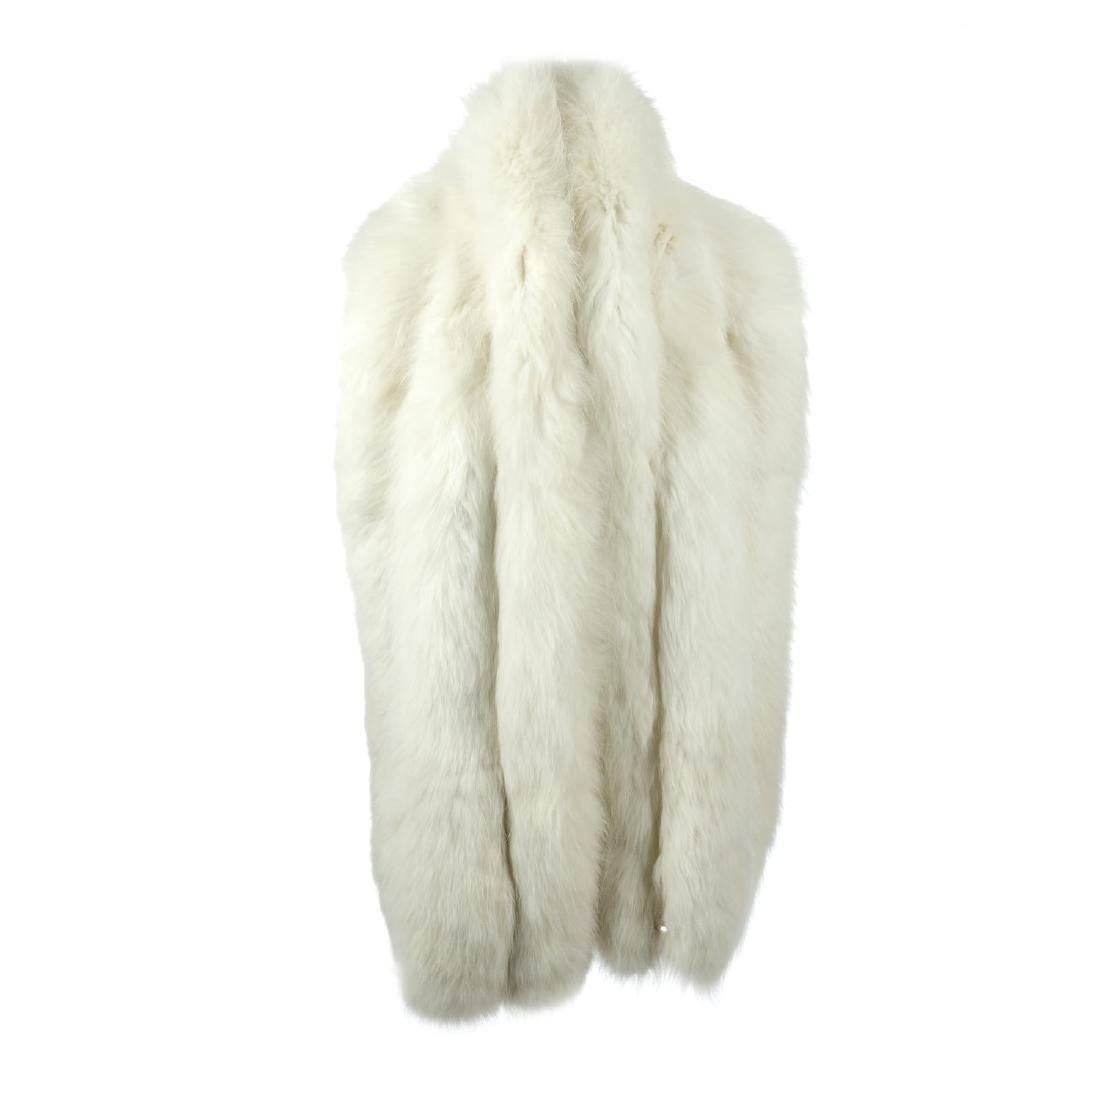 A fox fur stole. Featuring a collarless design with